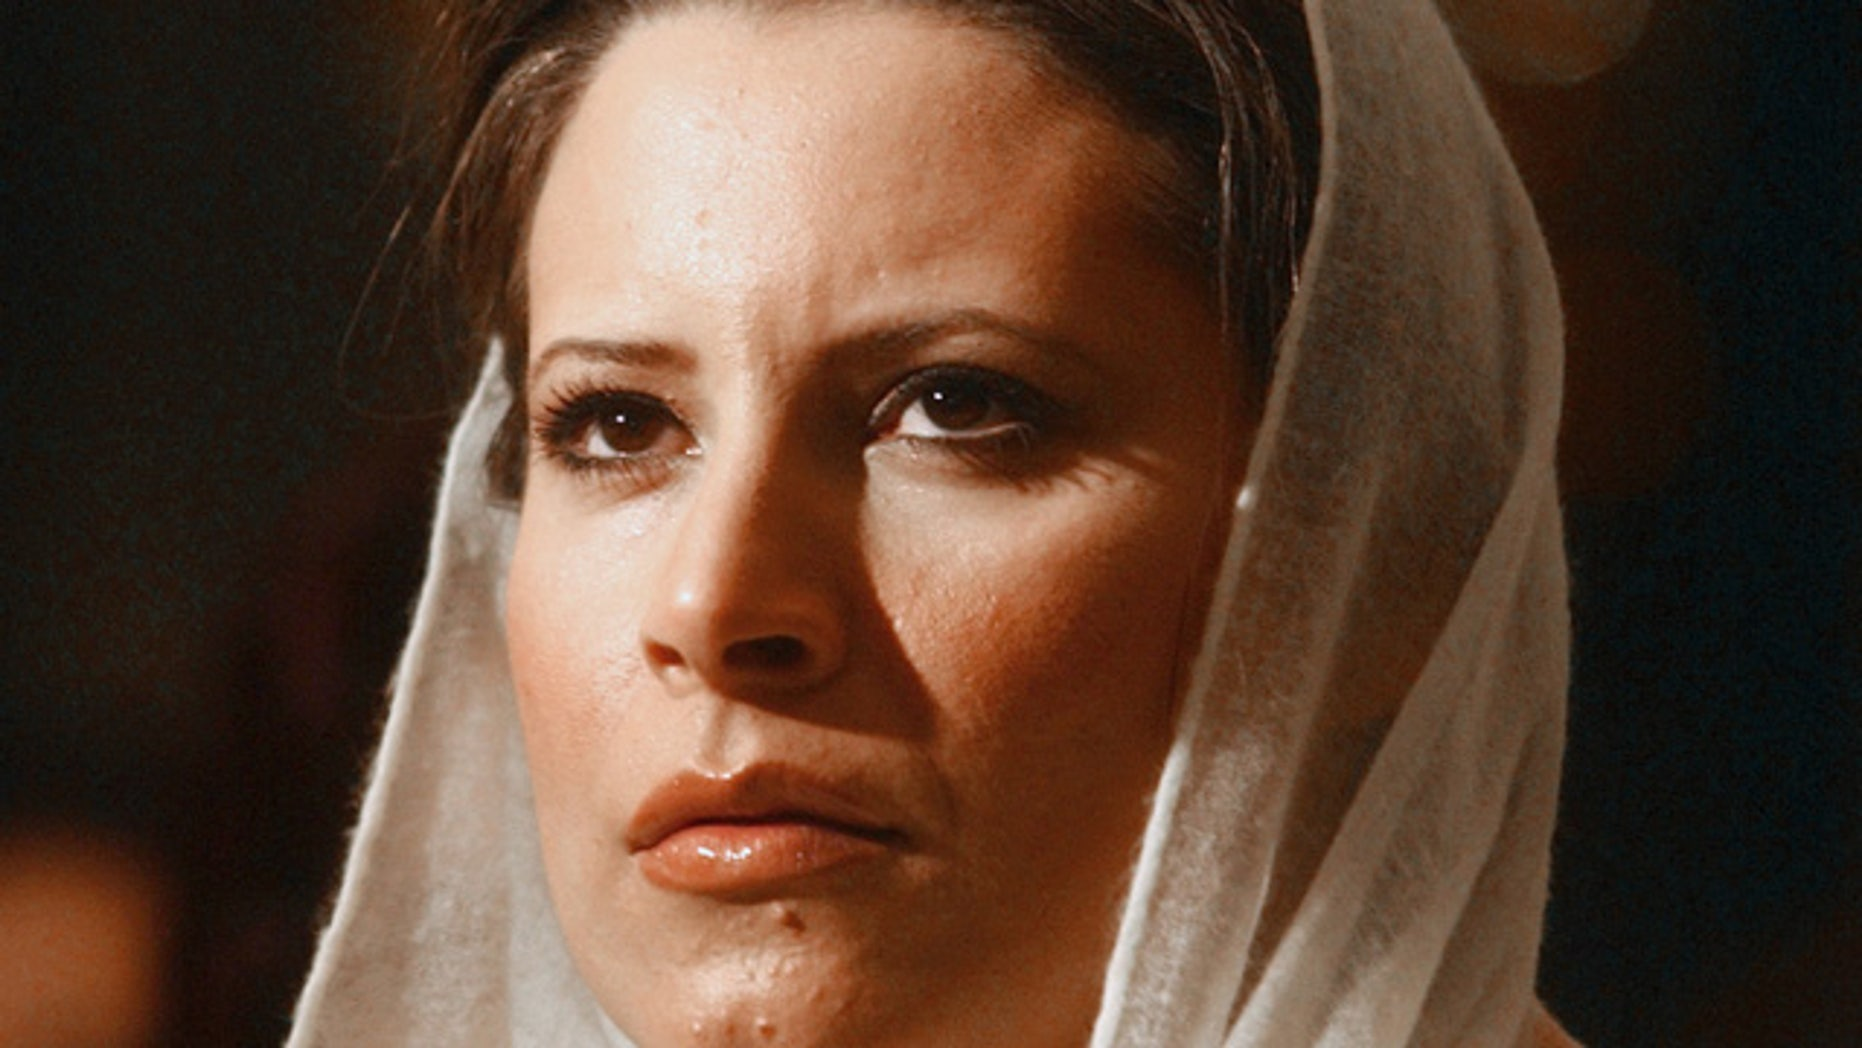 FILE 2005: Aisha Qaddafi, the daughter of Libyan leader Moammar Qaddafi, looks on before making a speech on the achievement of Libyan women in Cairo.